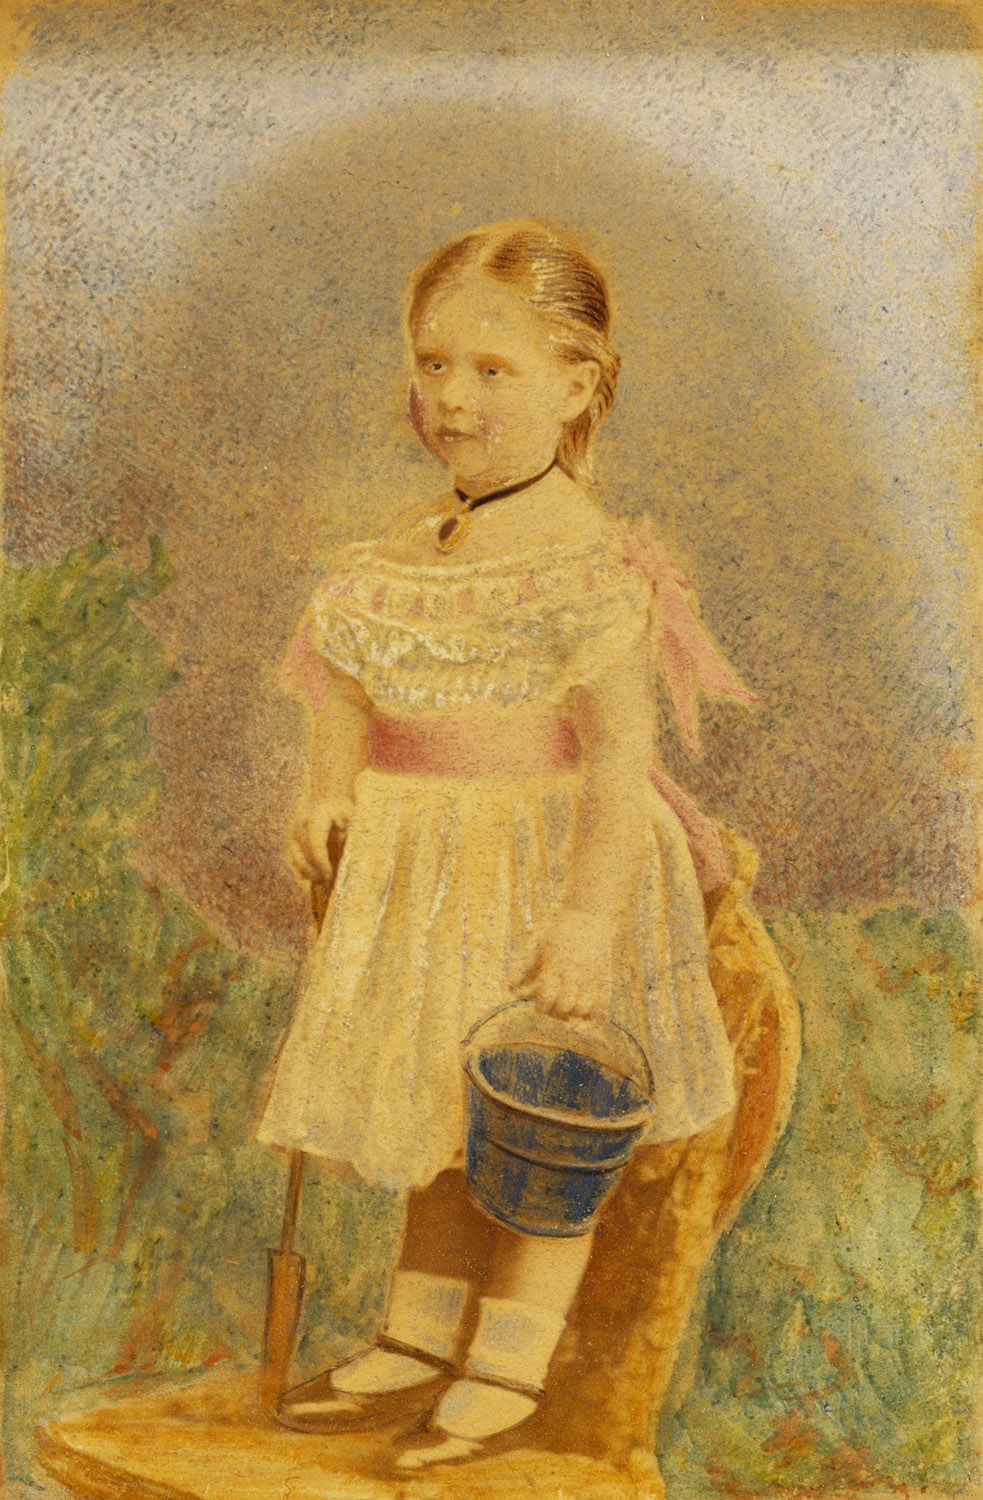 Hills & Saunders - Hand coloured photograph of a little girl with a bucket and spade  Not identified as Alix of Hesse but definately looks like a picture of her.